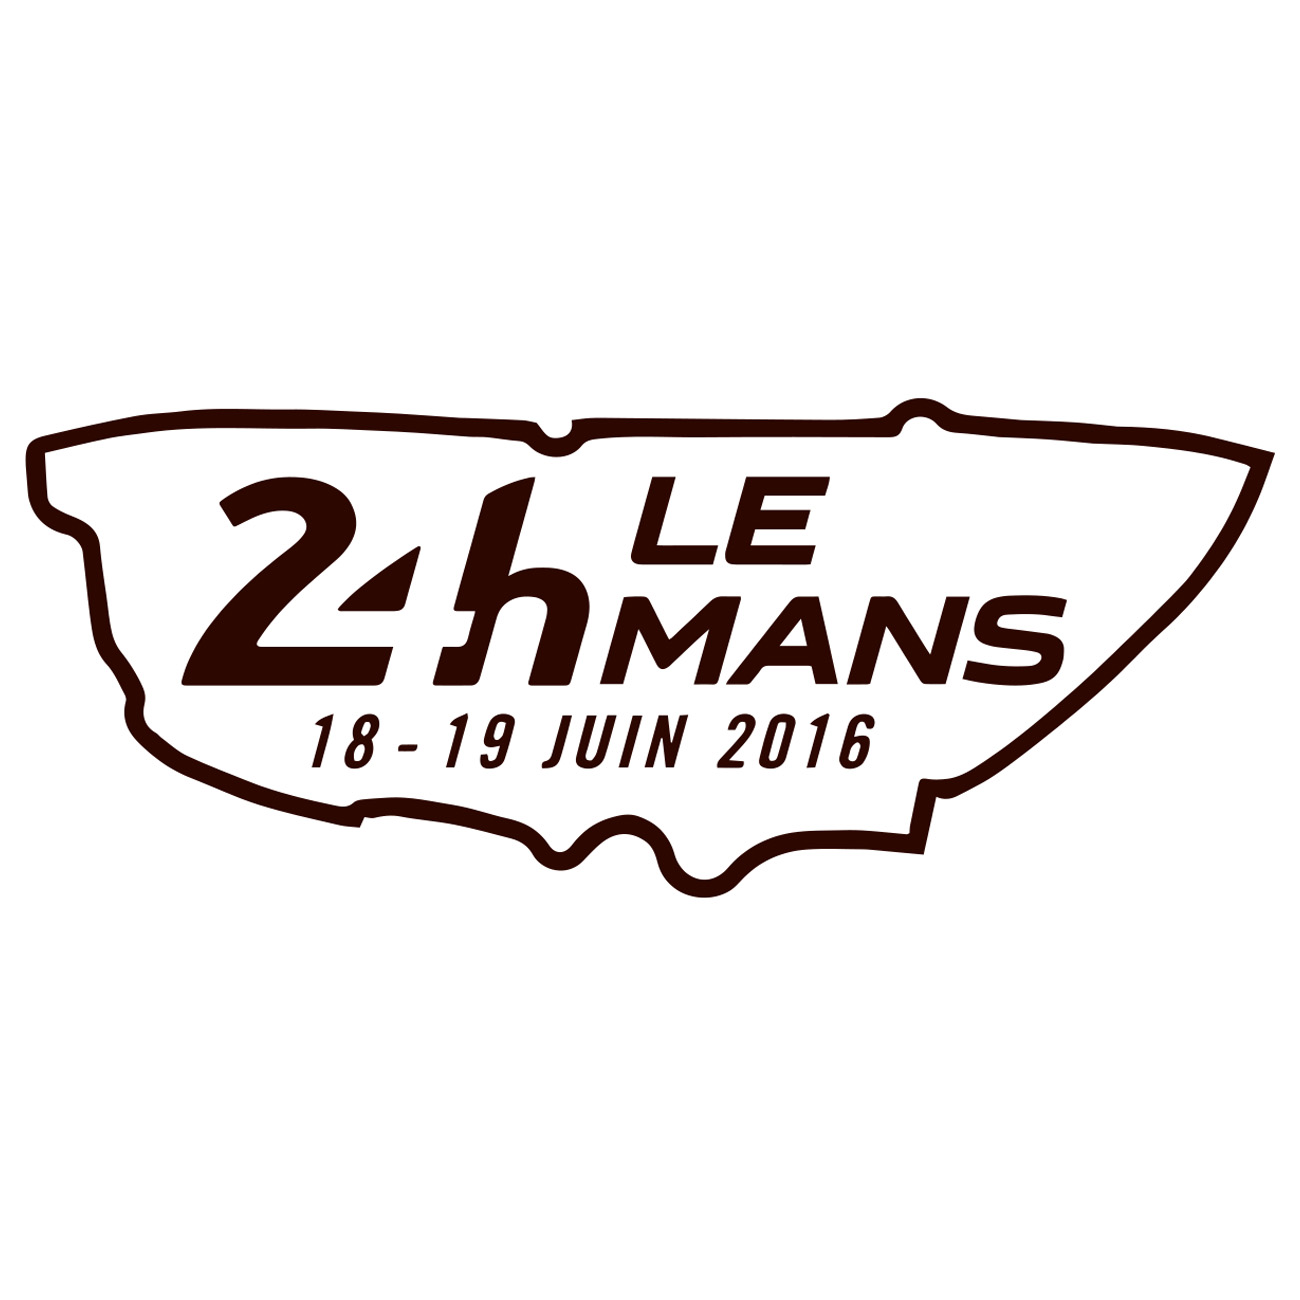 24 lemans logo 2016 2 vis alle stickers. Black Bedroom Furniture Sets. Home Design Ideas